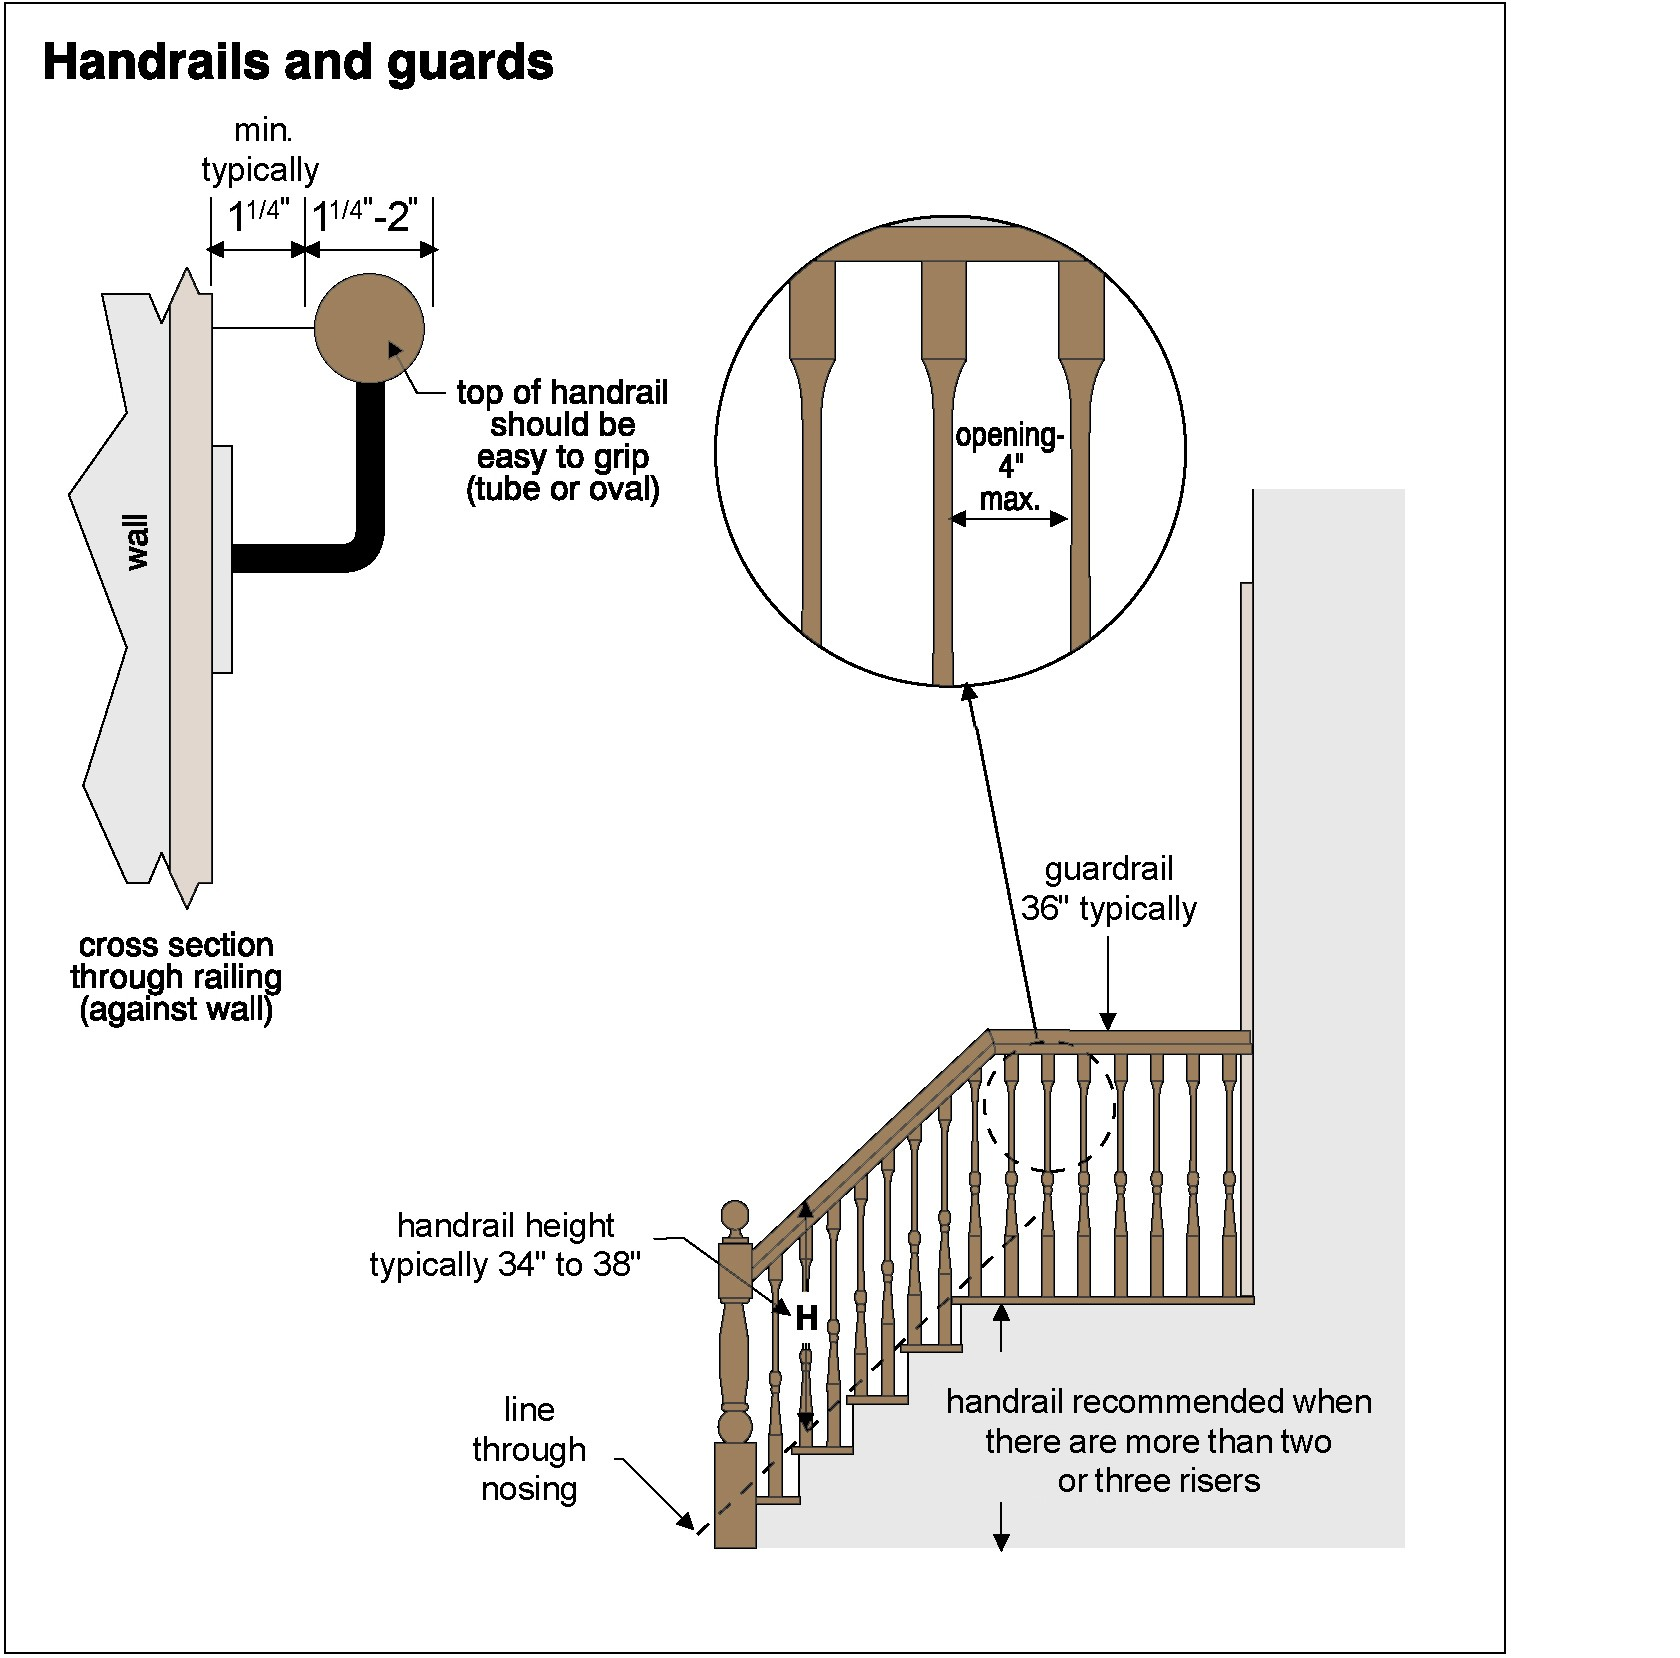 Handrails and guards